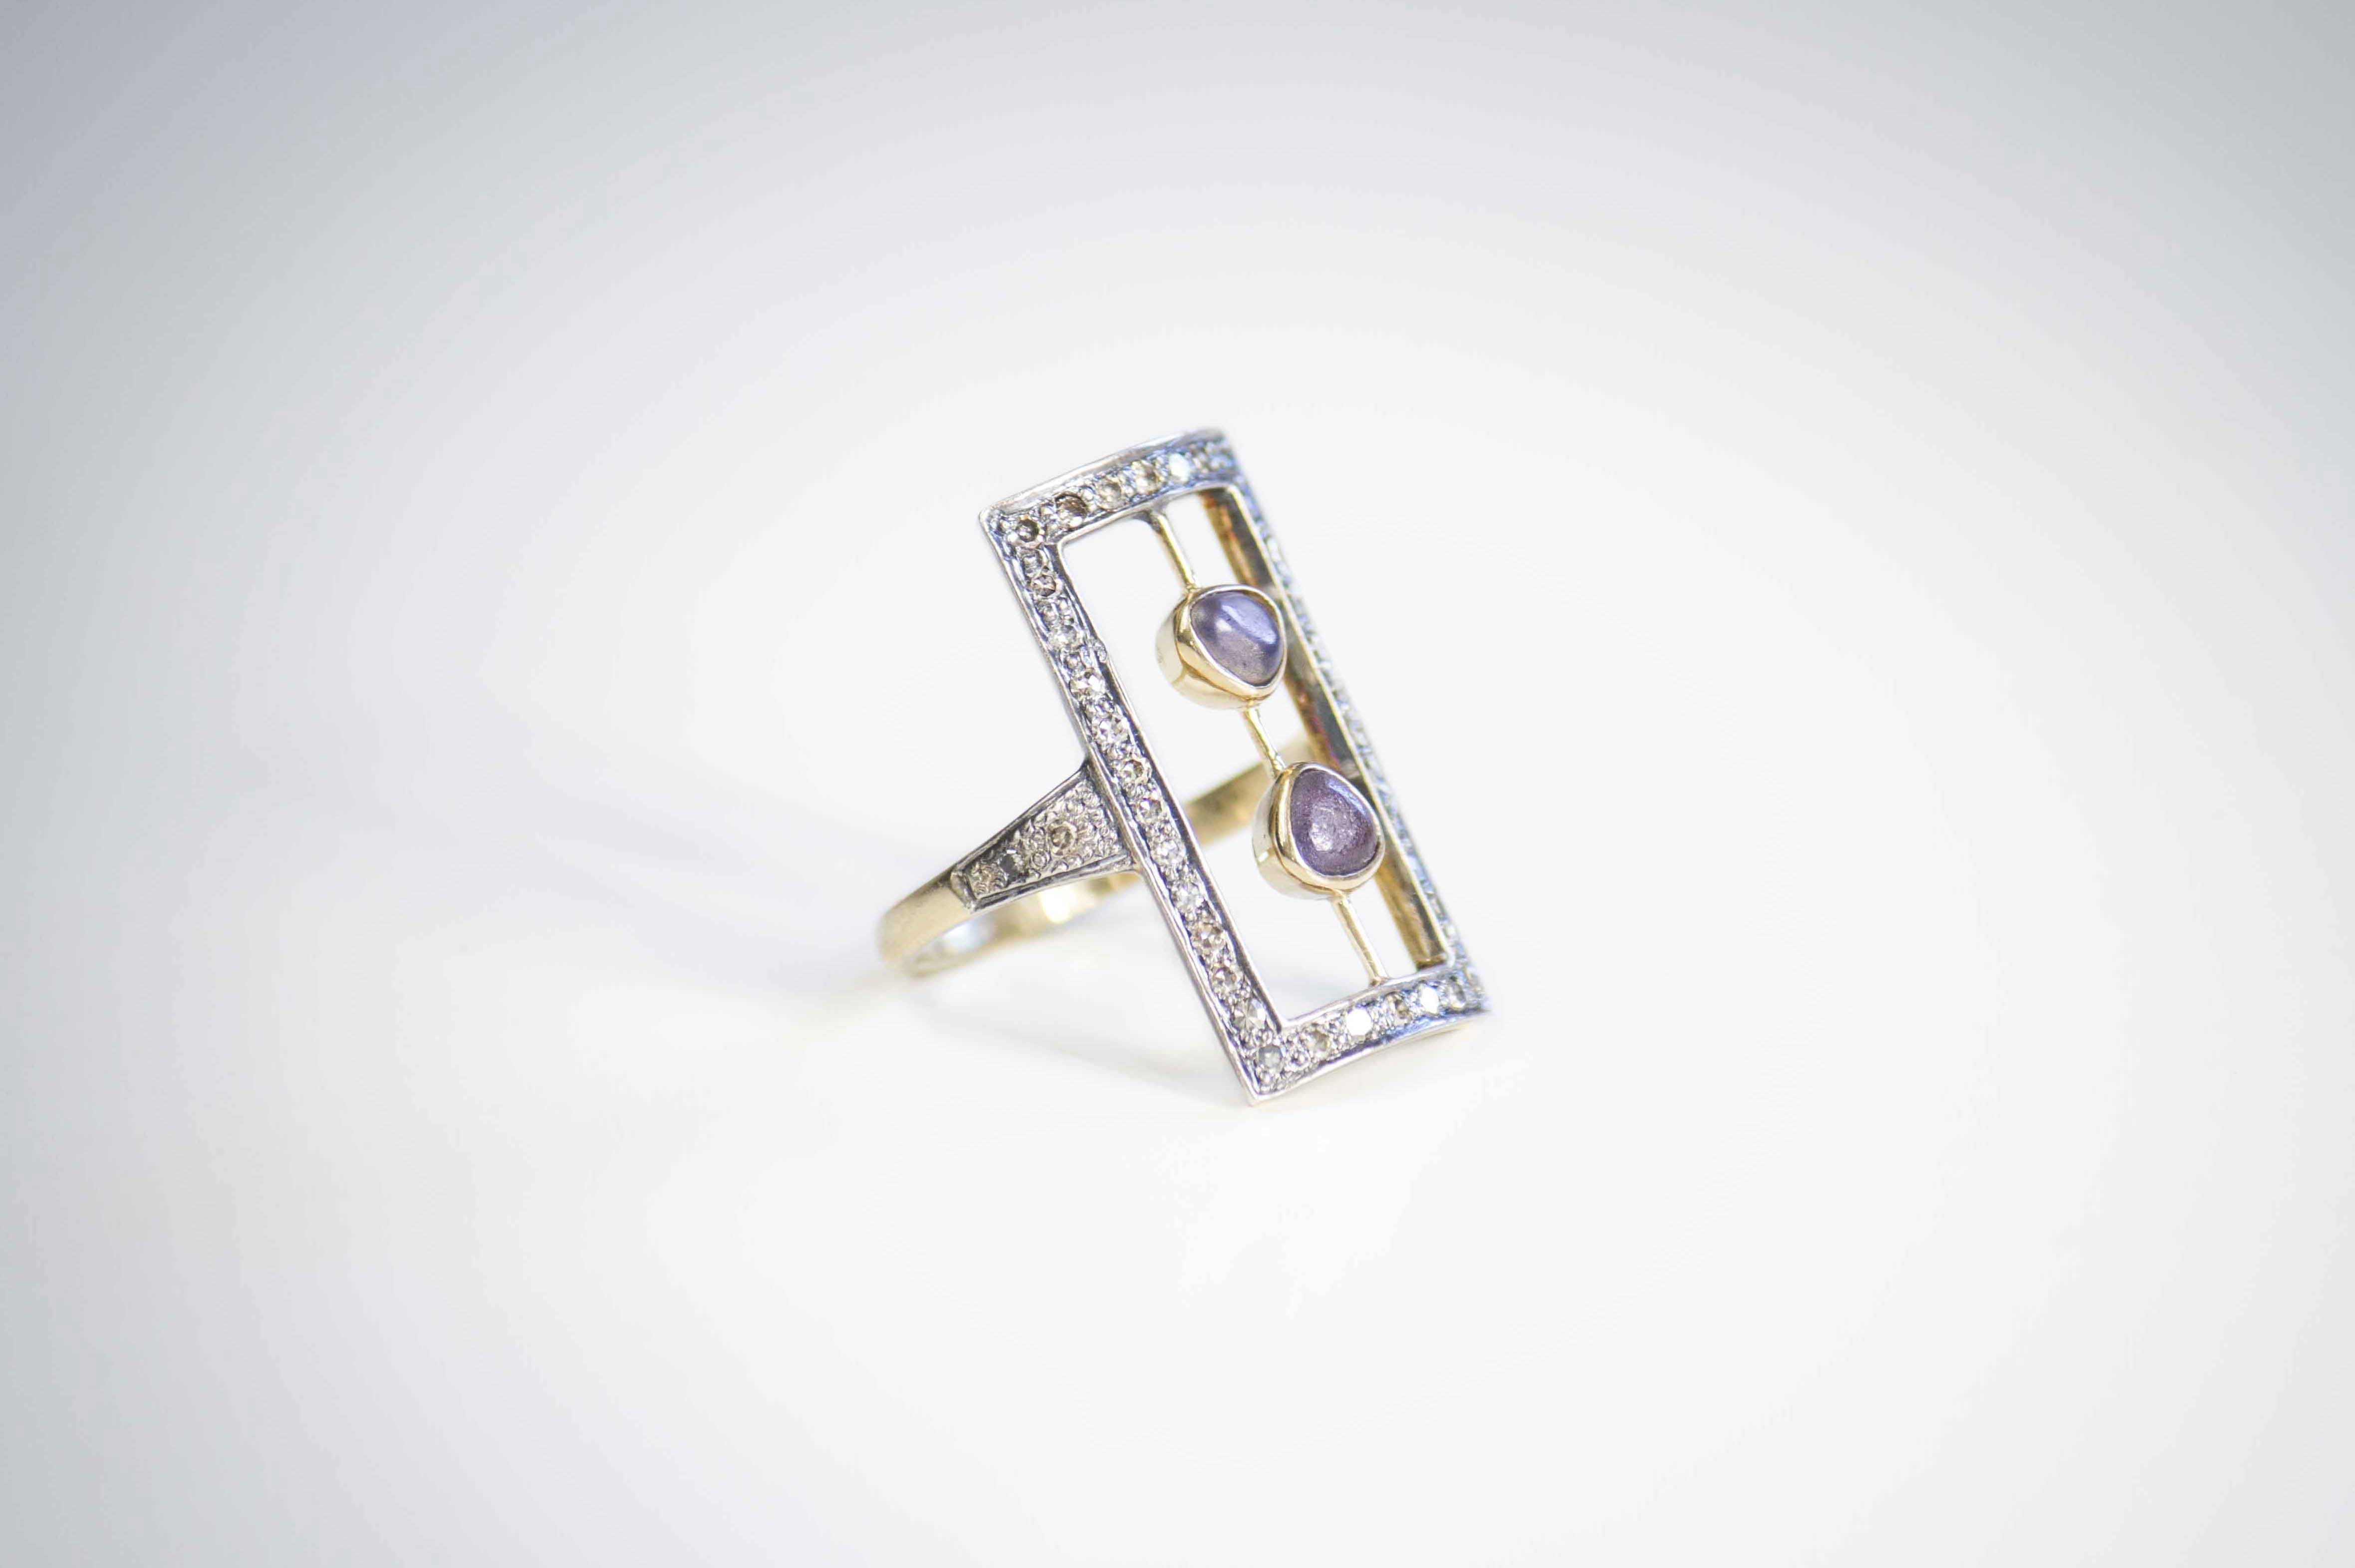 Deco diamonds ring Deco style ring crafted in yellow gold with diamond pave and rough spinels